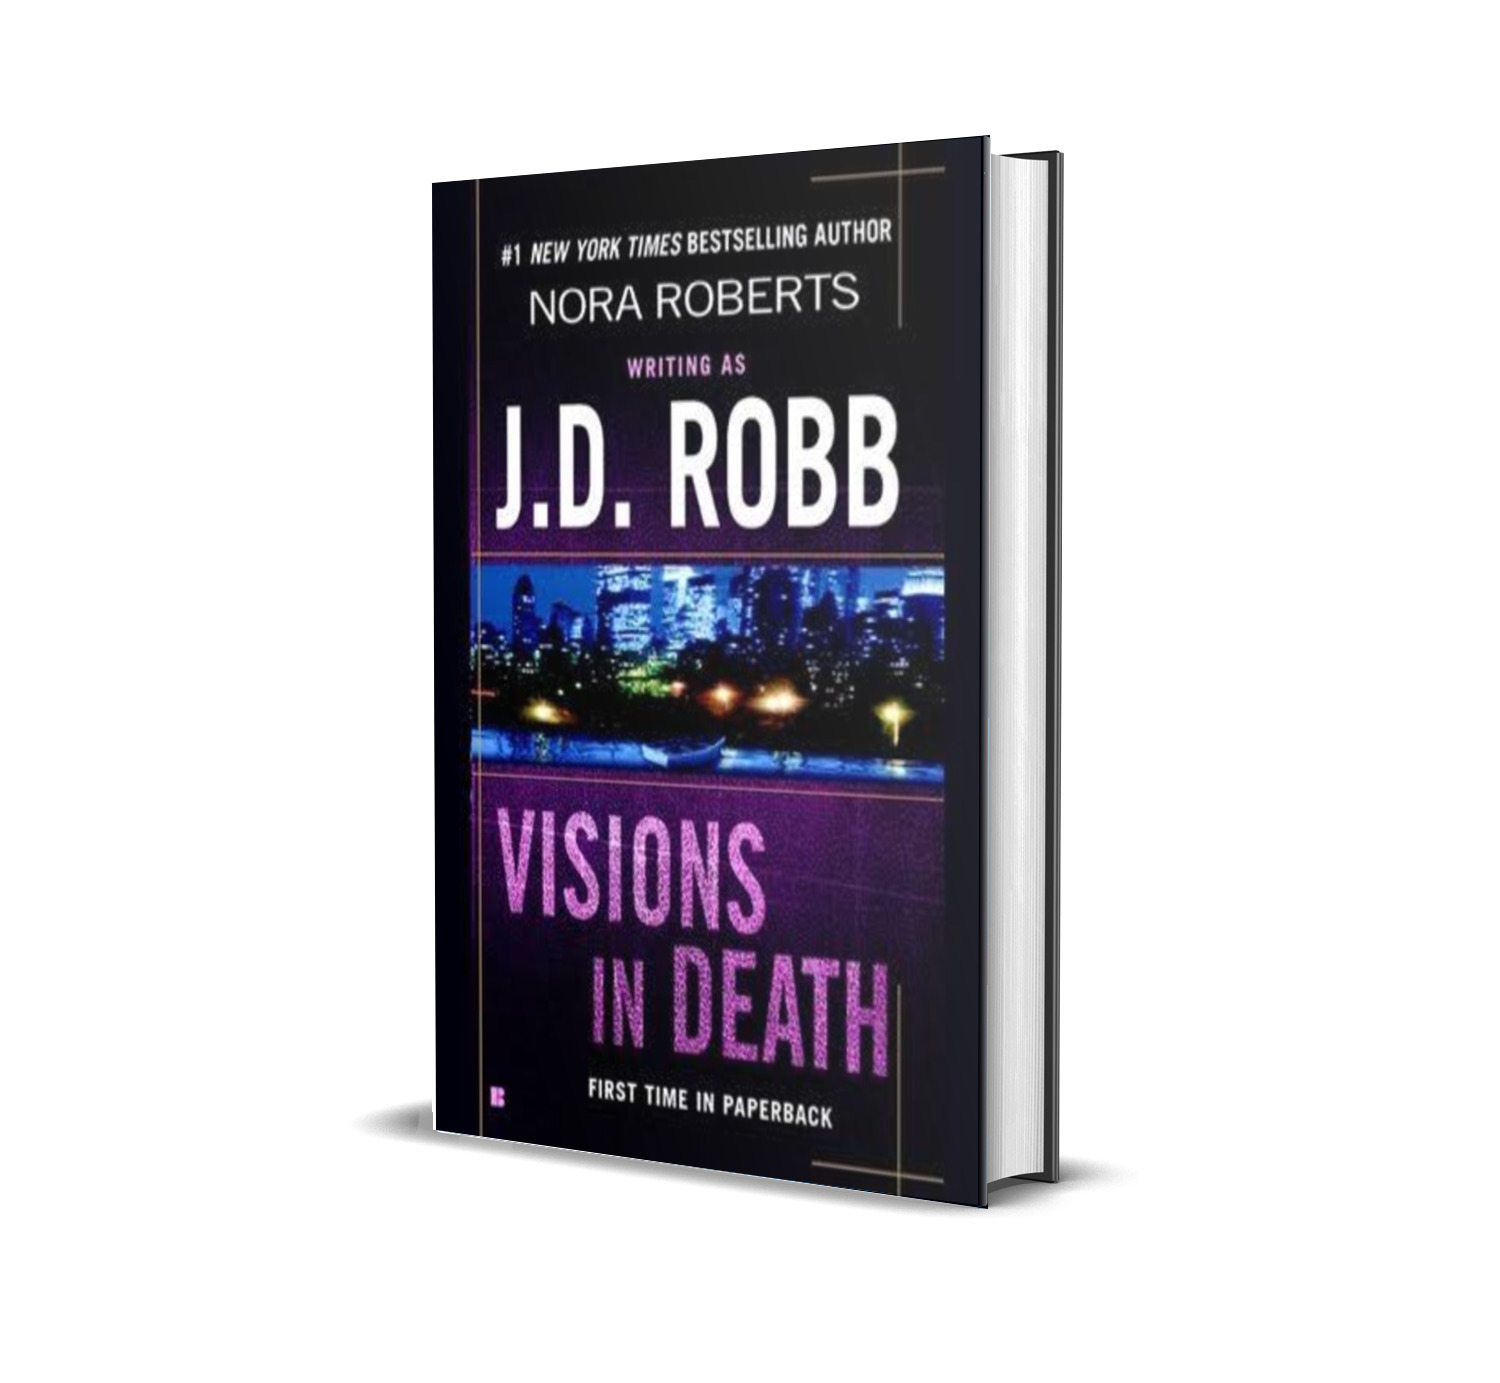 VISIONS IN DEATH NORA ROBERTS